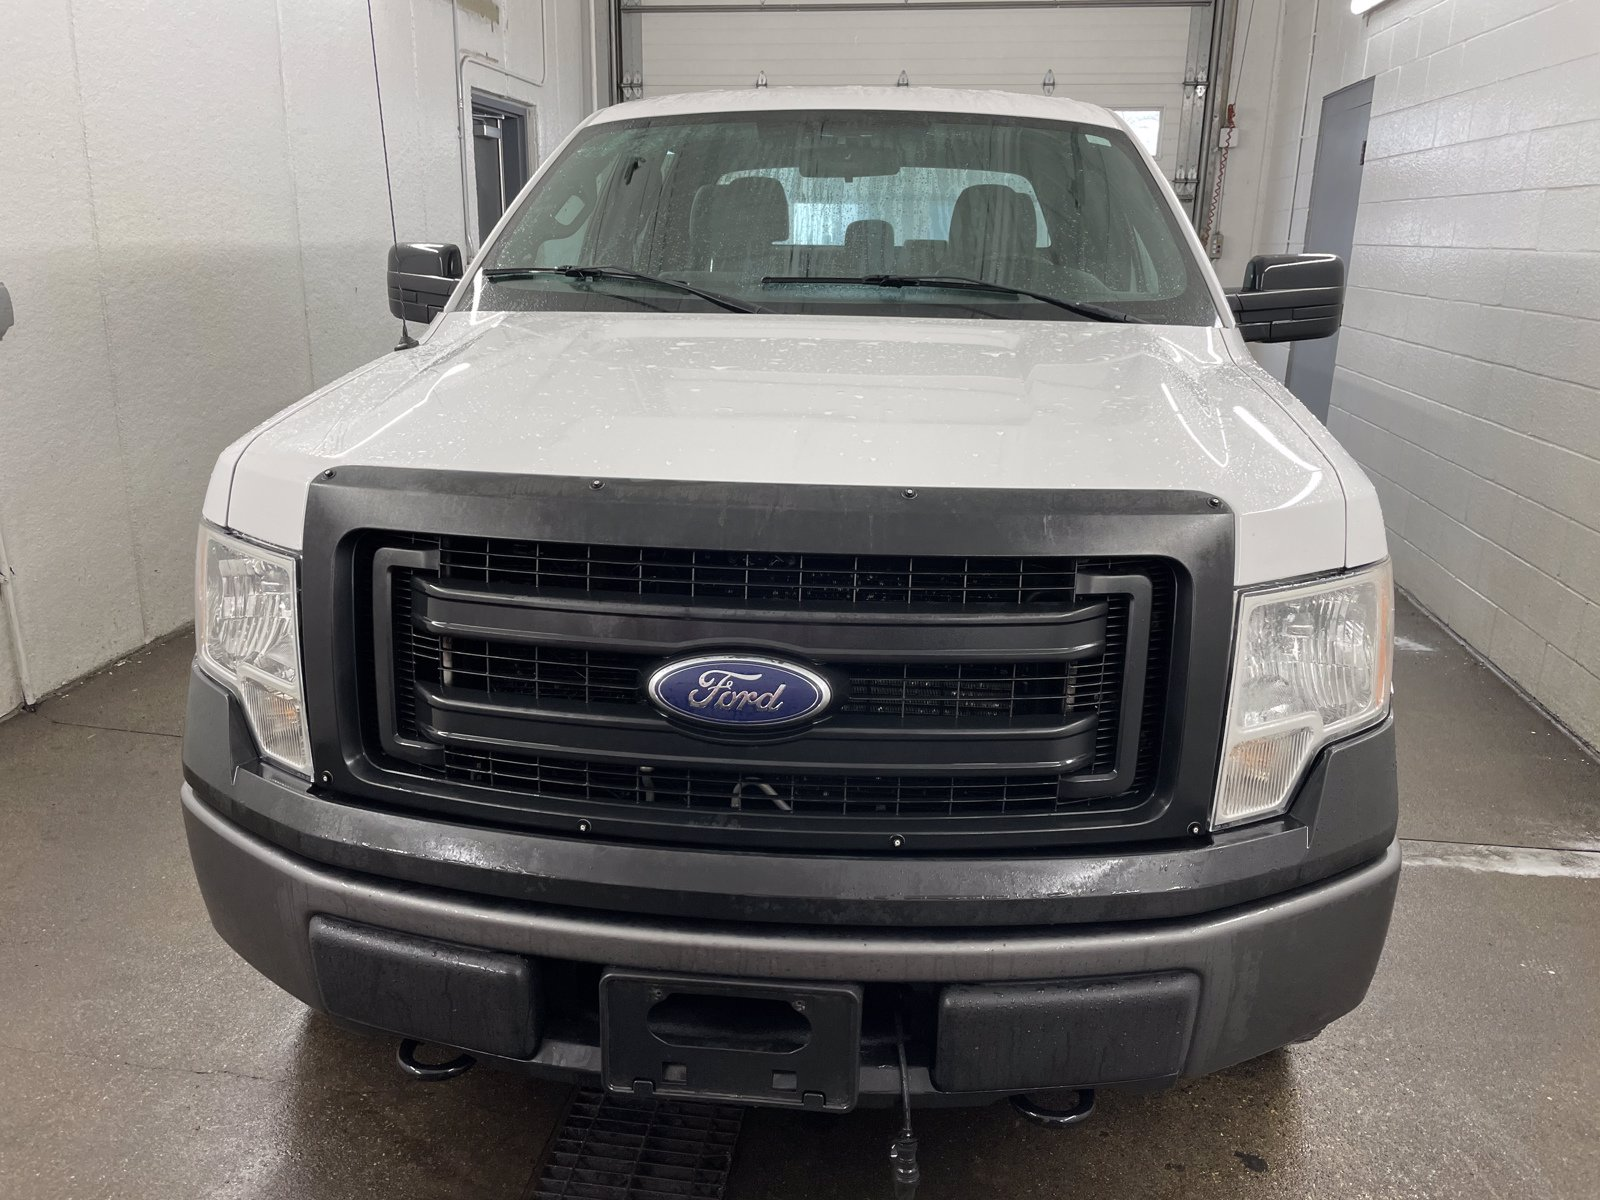 Used 2014 Ford F-150 XL with VIN 1FTFW1EF1EKD93899 for sale in Minneapolis, Minnesota